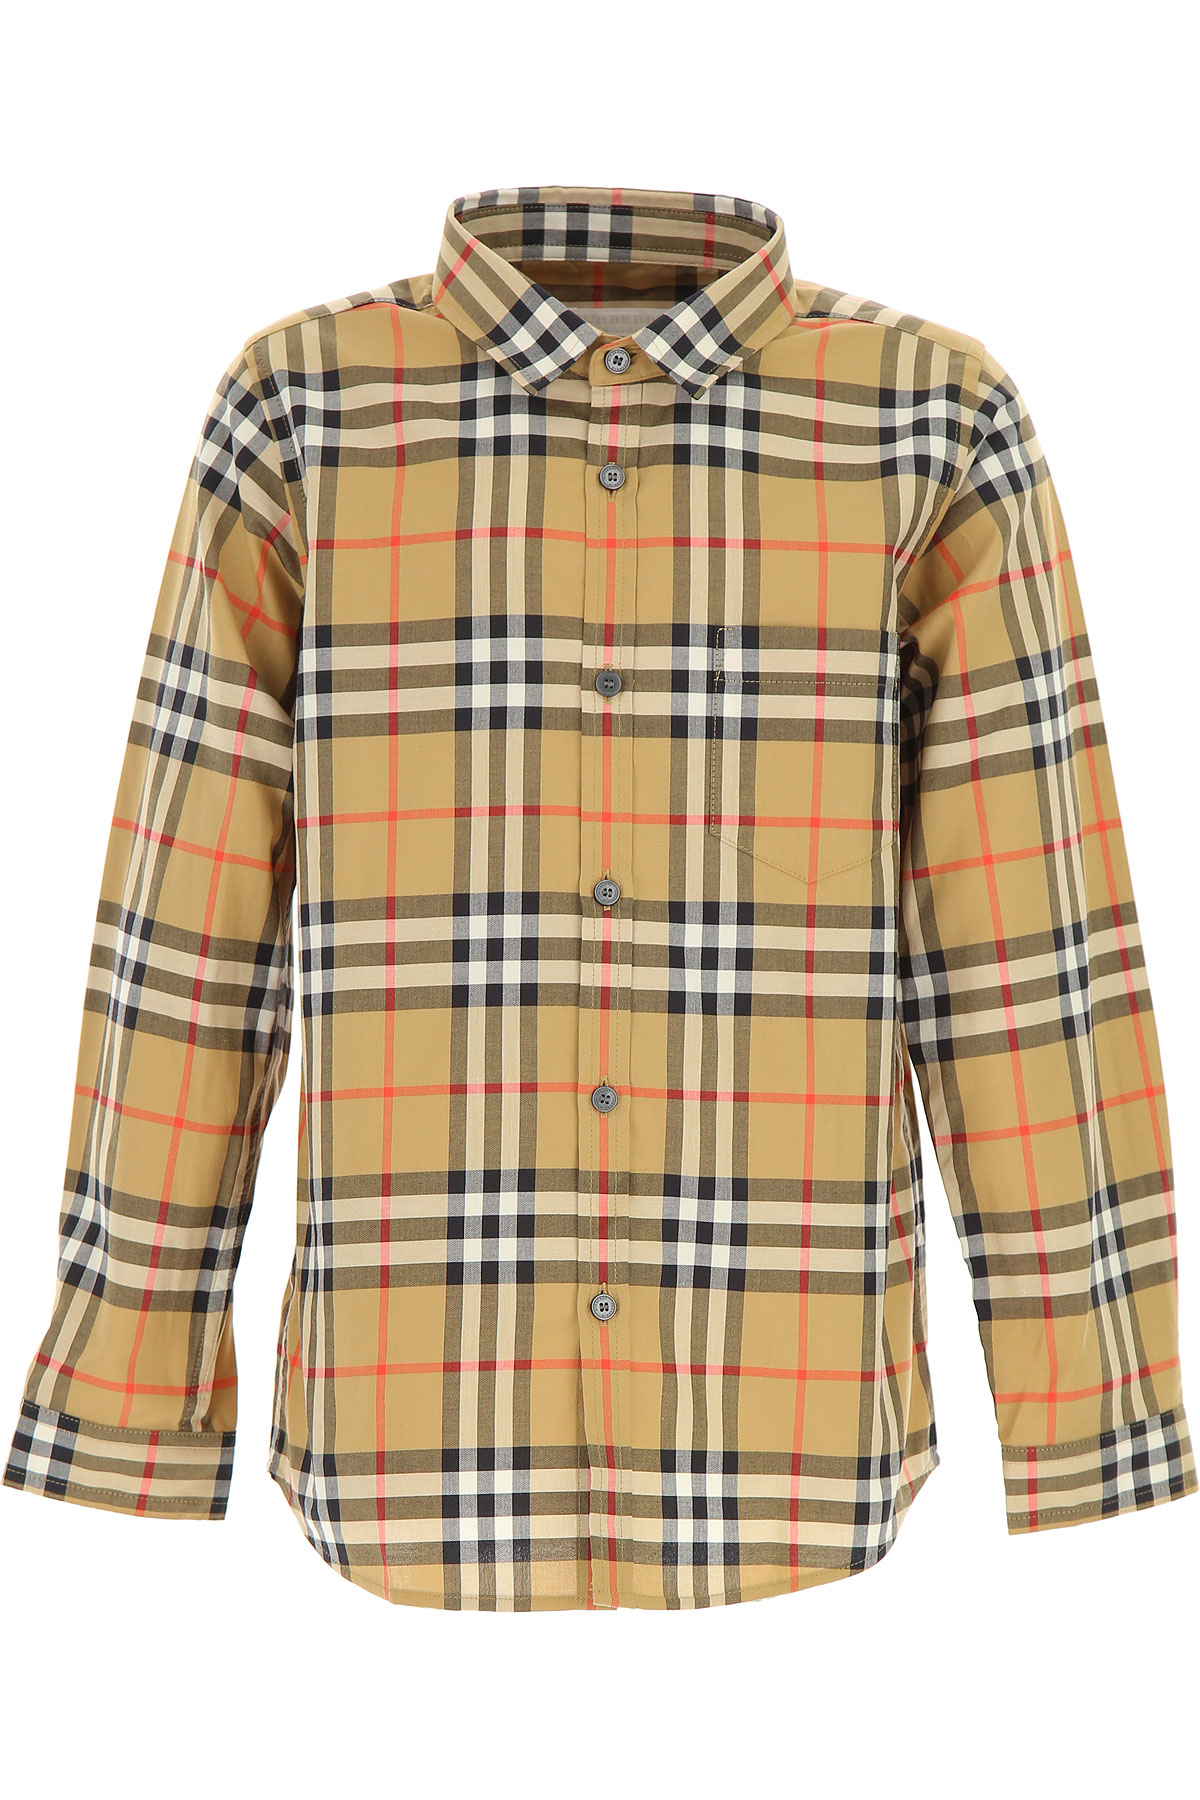 Image of Burberry Kids Shirts for Boys, Antique Yellow, Cotton, 2017, 10Y 14Y 8Y